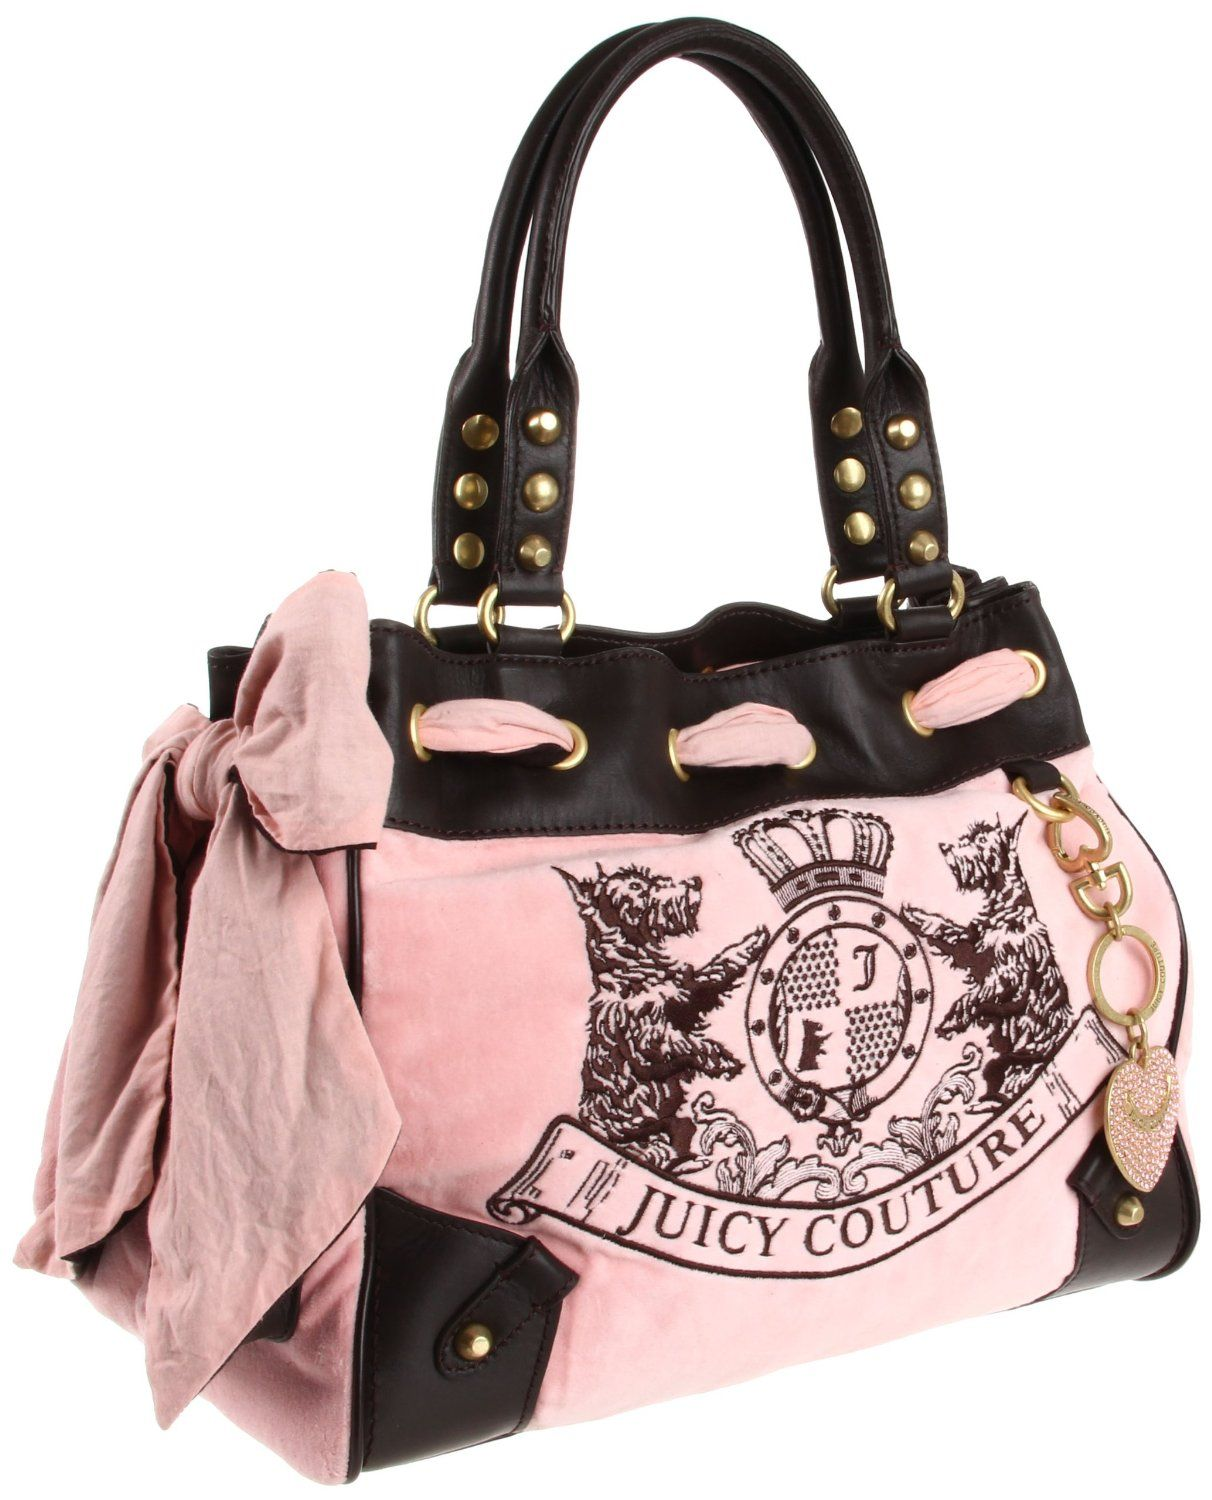 52fc9a2aa5cd82 Juicy Couture Scottie Embroidery Daydreamer Tote Bag, Pink Nardels ...